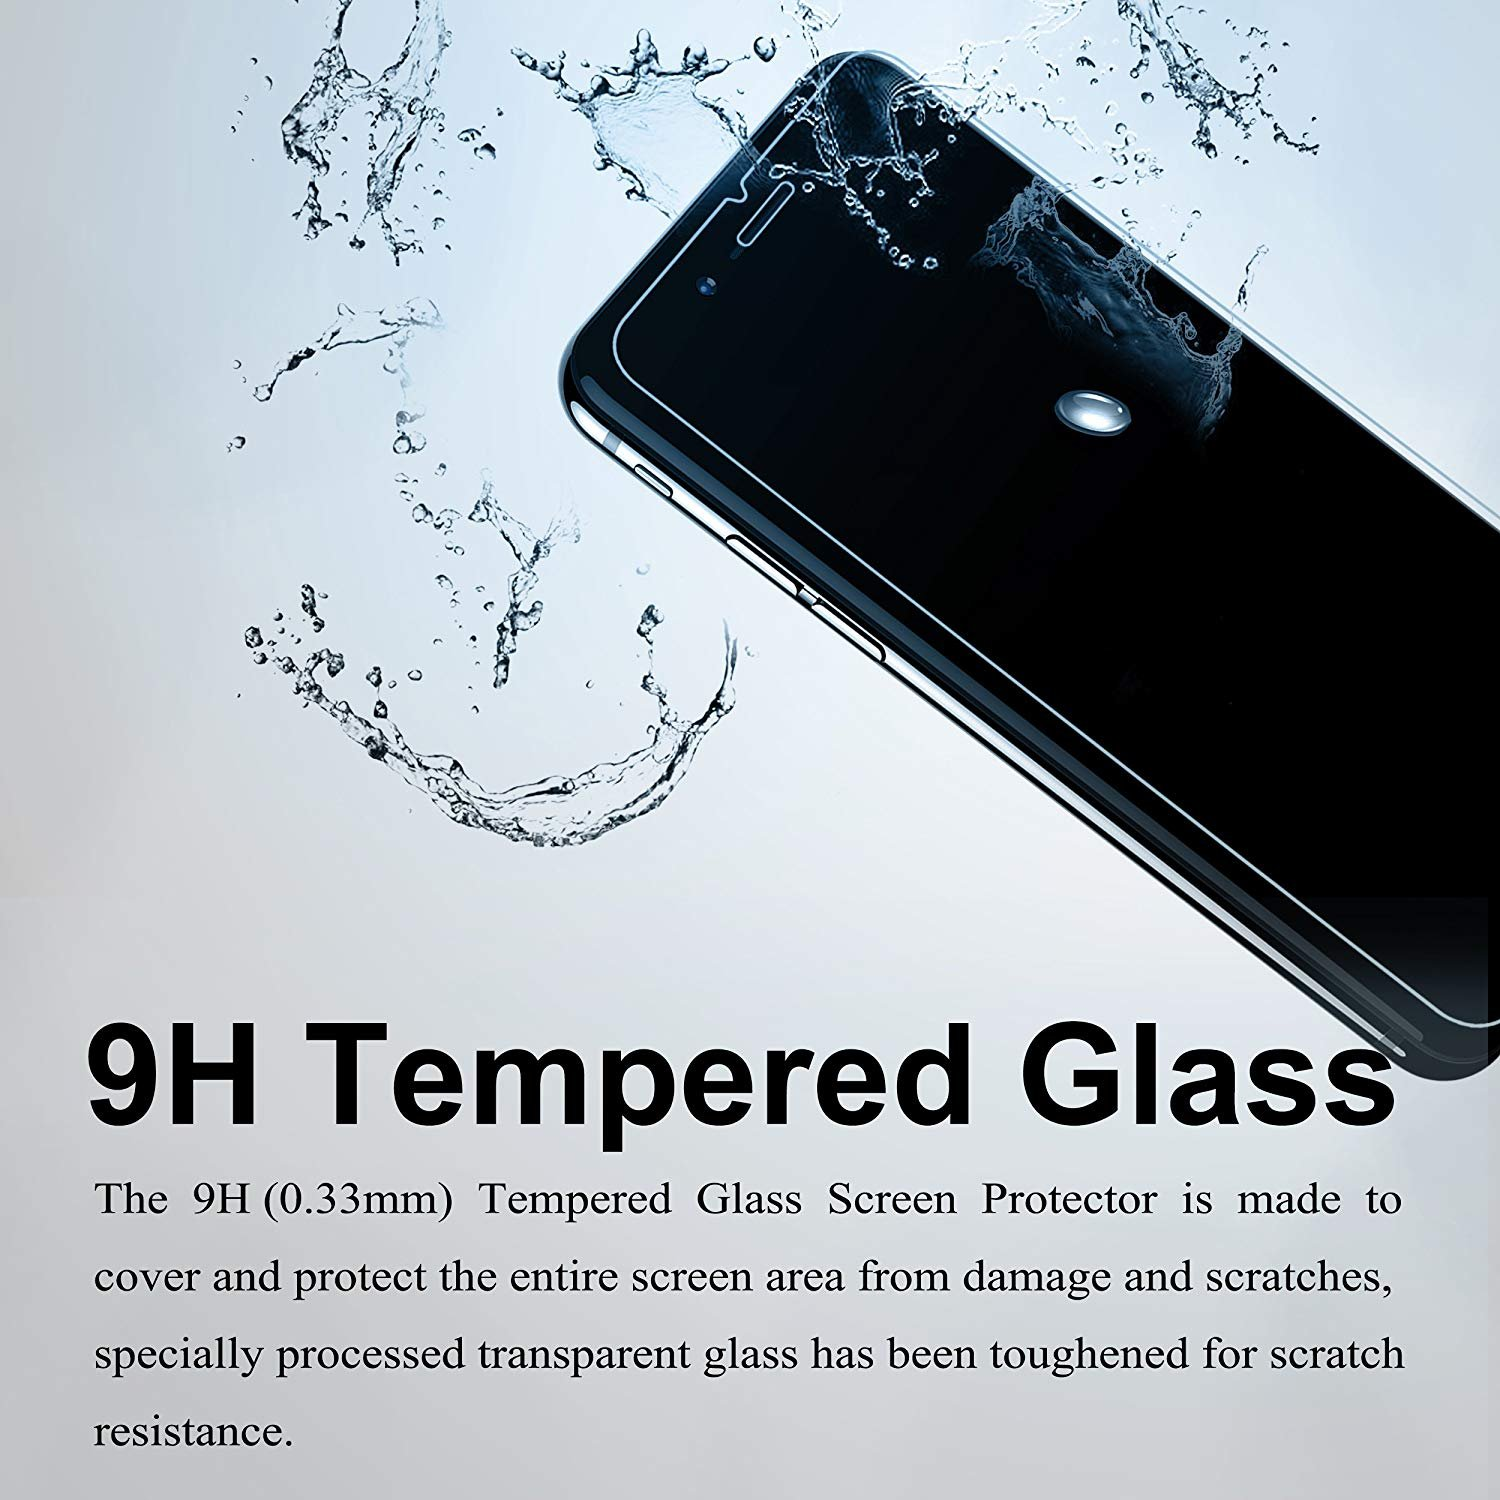 High Transparency Ramcox Galaxy A70 Tempered Glass Screen Protector Anti Scratch Screen Protector Film for Samsung Galaxy A70 2 Pack Bubble Free